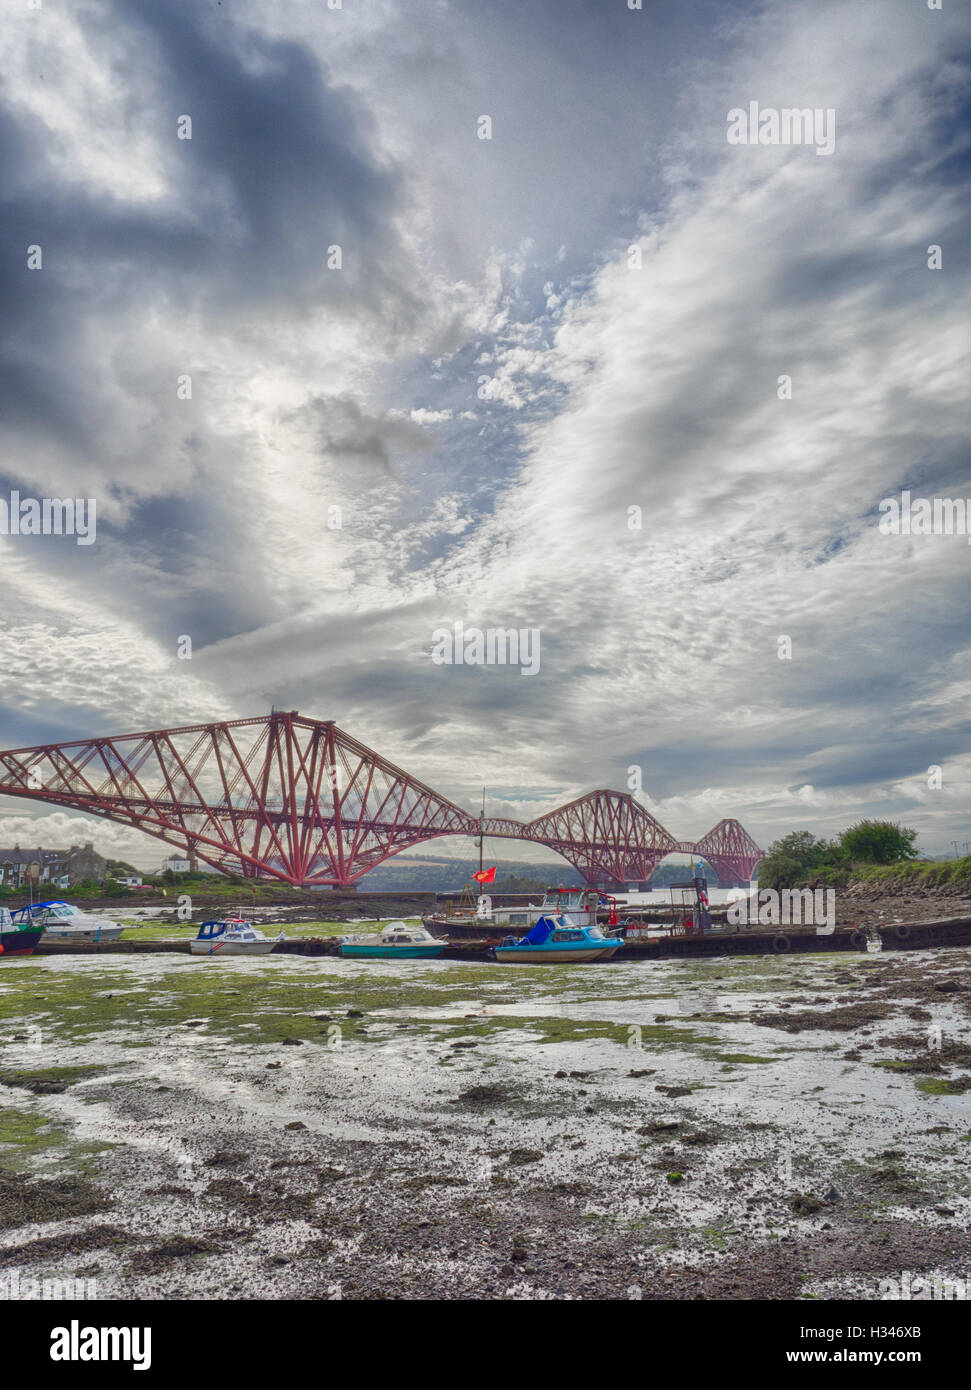 Boats moored in front of the Forth Rail Bridge in Edinburgh, Scotland, connecting the towns of North and South - Stock Image